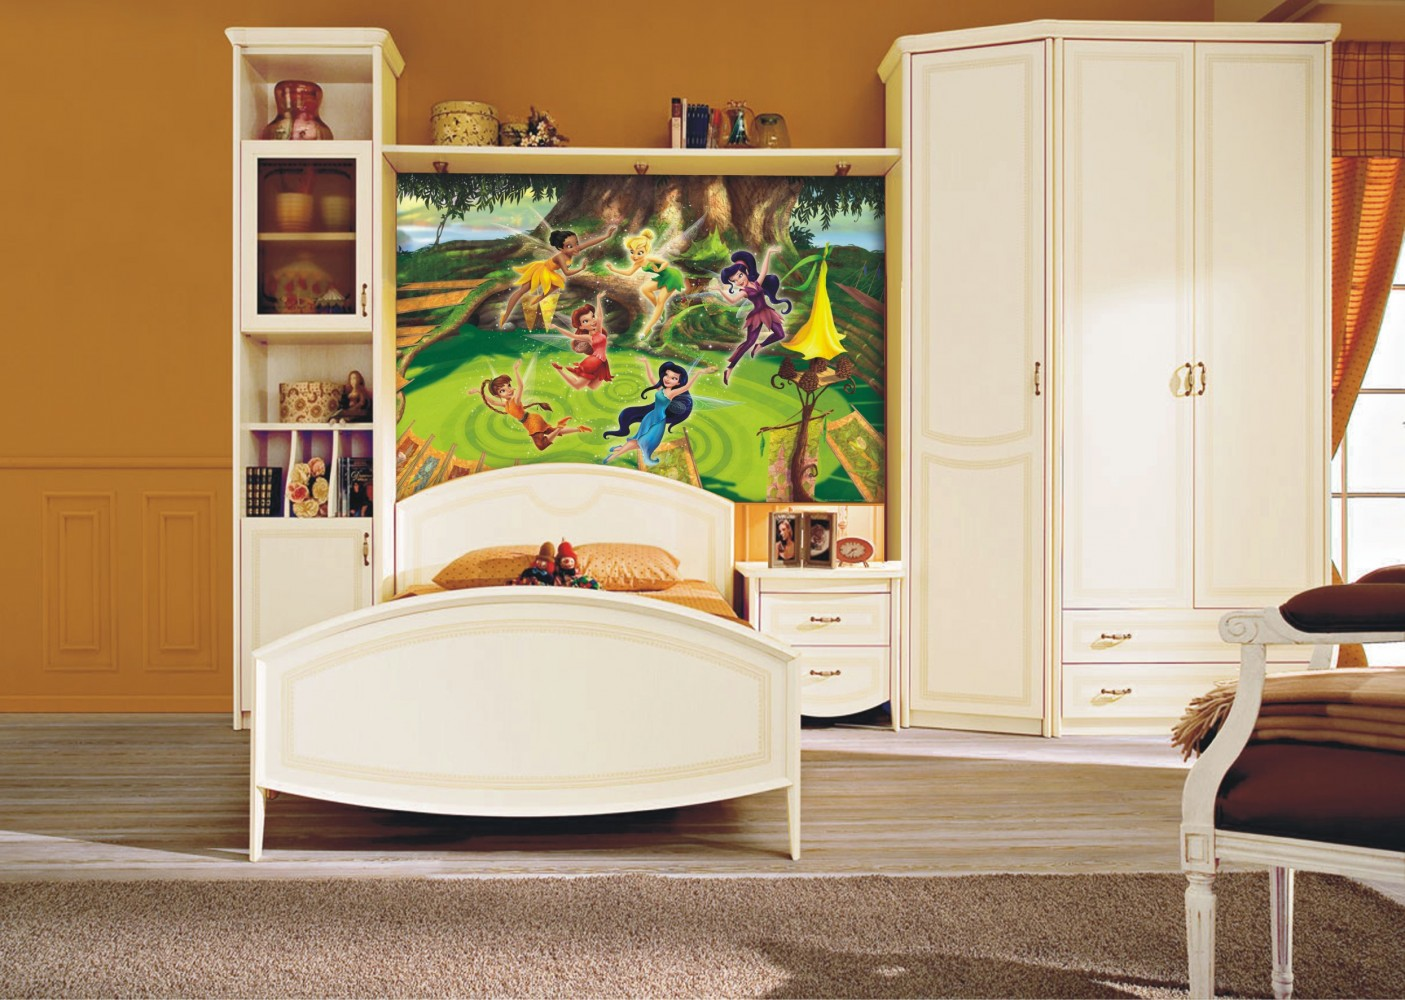 xxl poster wall mural wallpaper disney tinkerbell feen tinker bell photo 160 cm x 115 cm. Black Bedroom Furniture Sets. Home Design Ideas